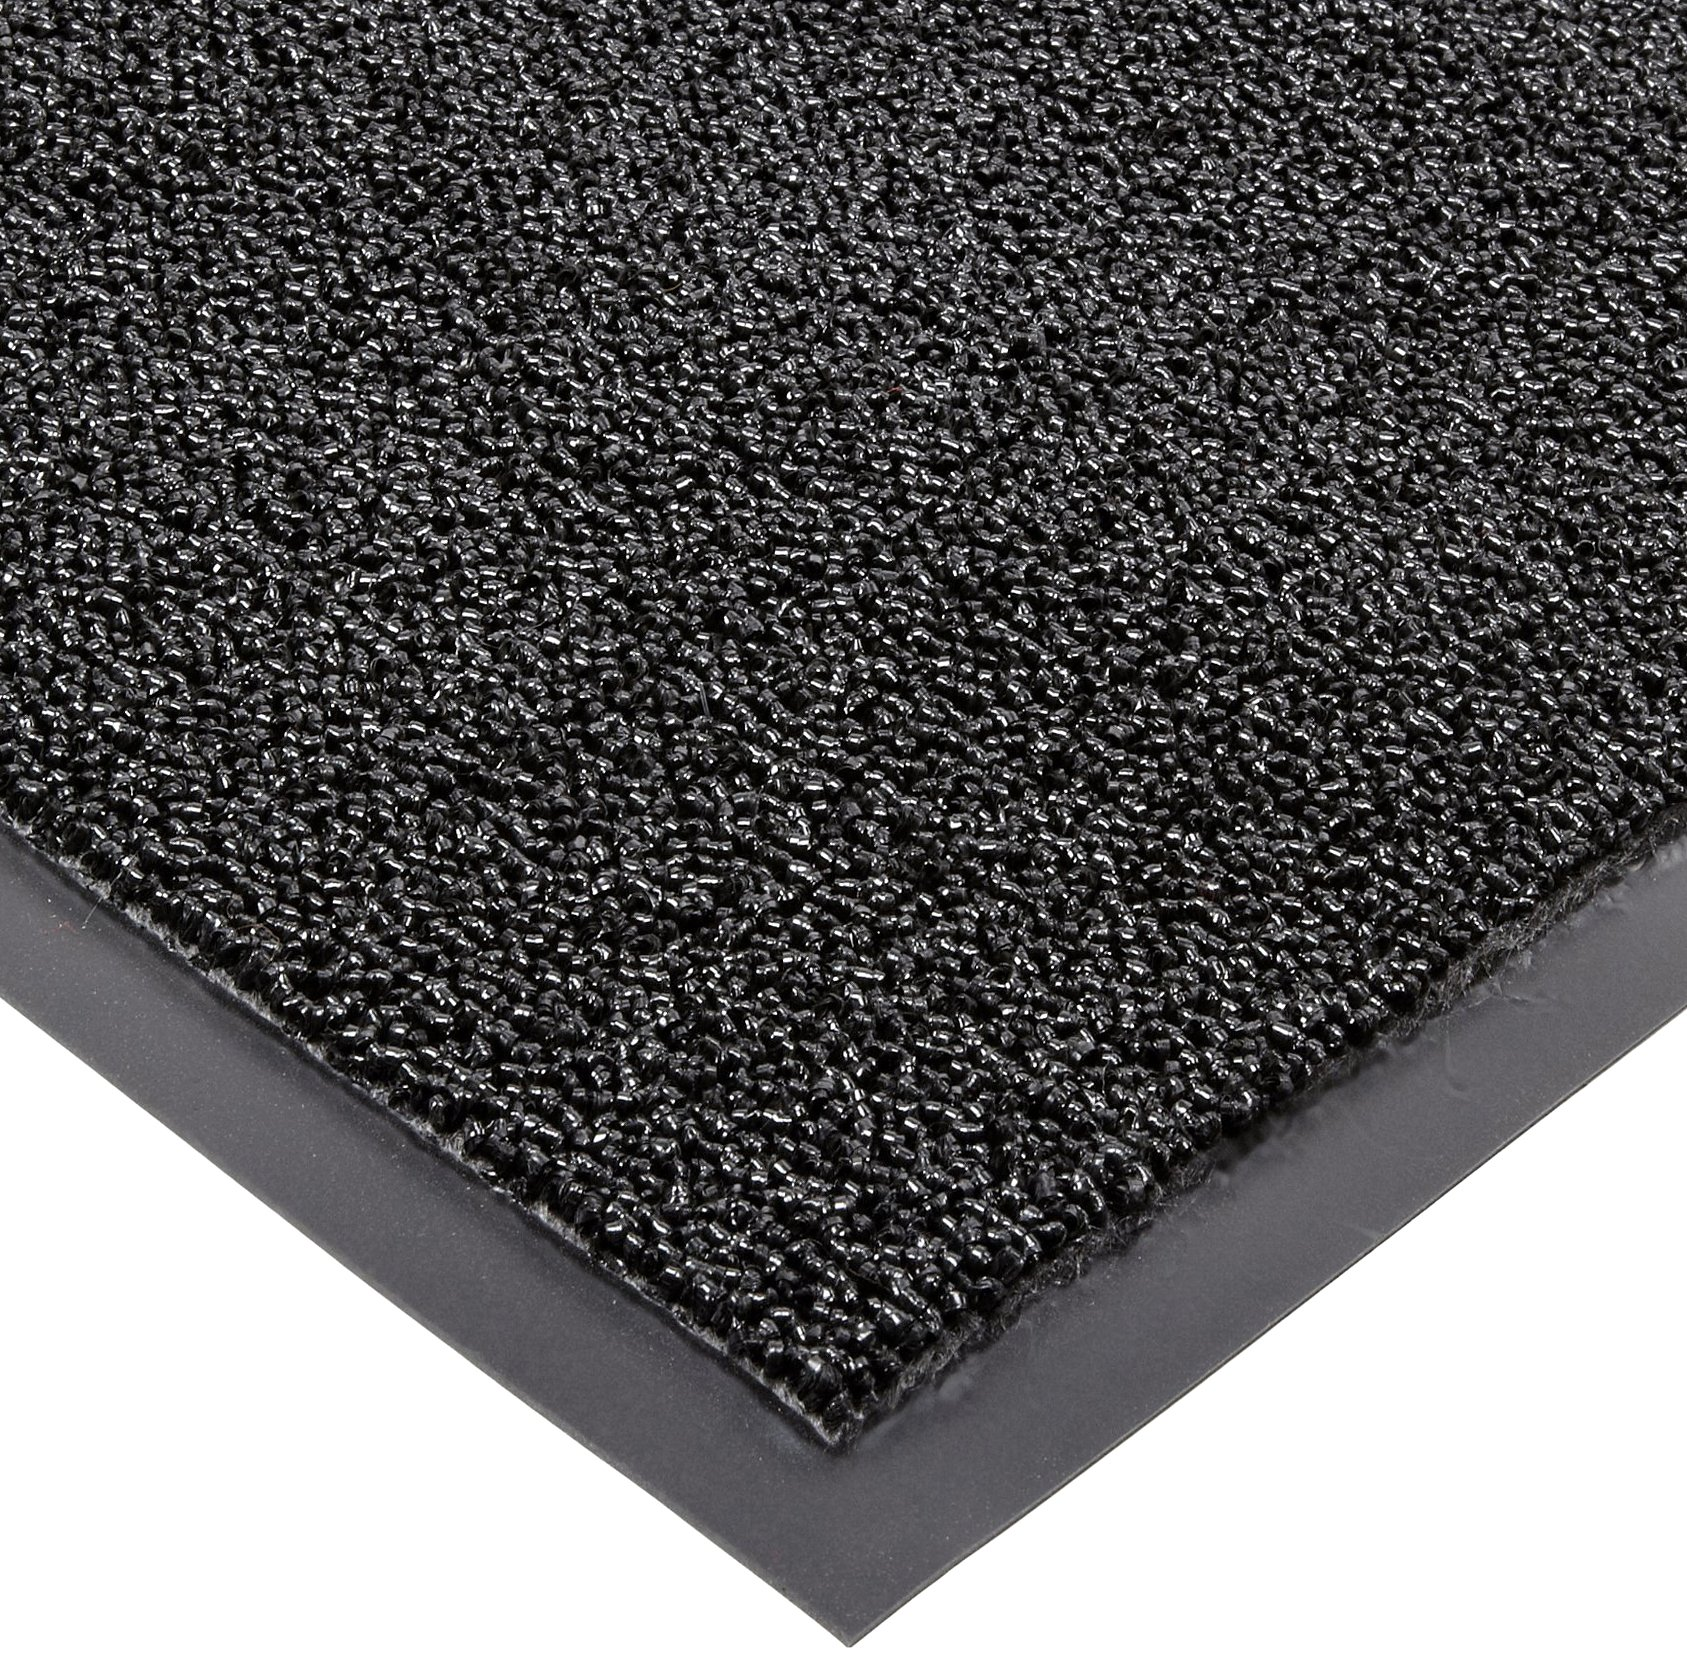 Notrax Non-Absorbent Fiber 231 Prelude Entrance Mat, for Outdoor and Heavy Traffic Areas, 4' Width x 8' Length x 1/4'' Thickness, Black